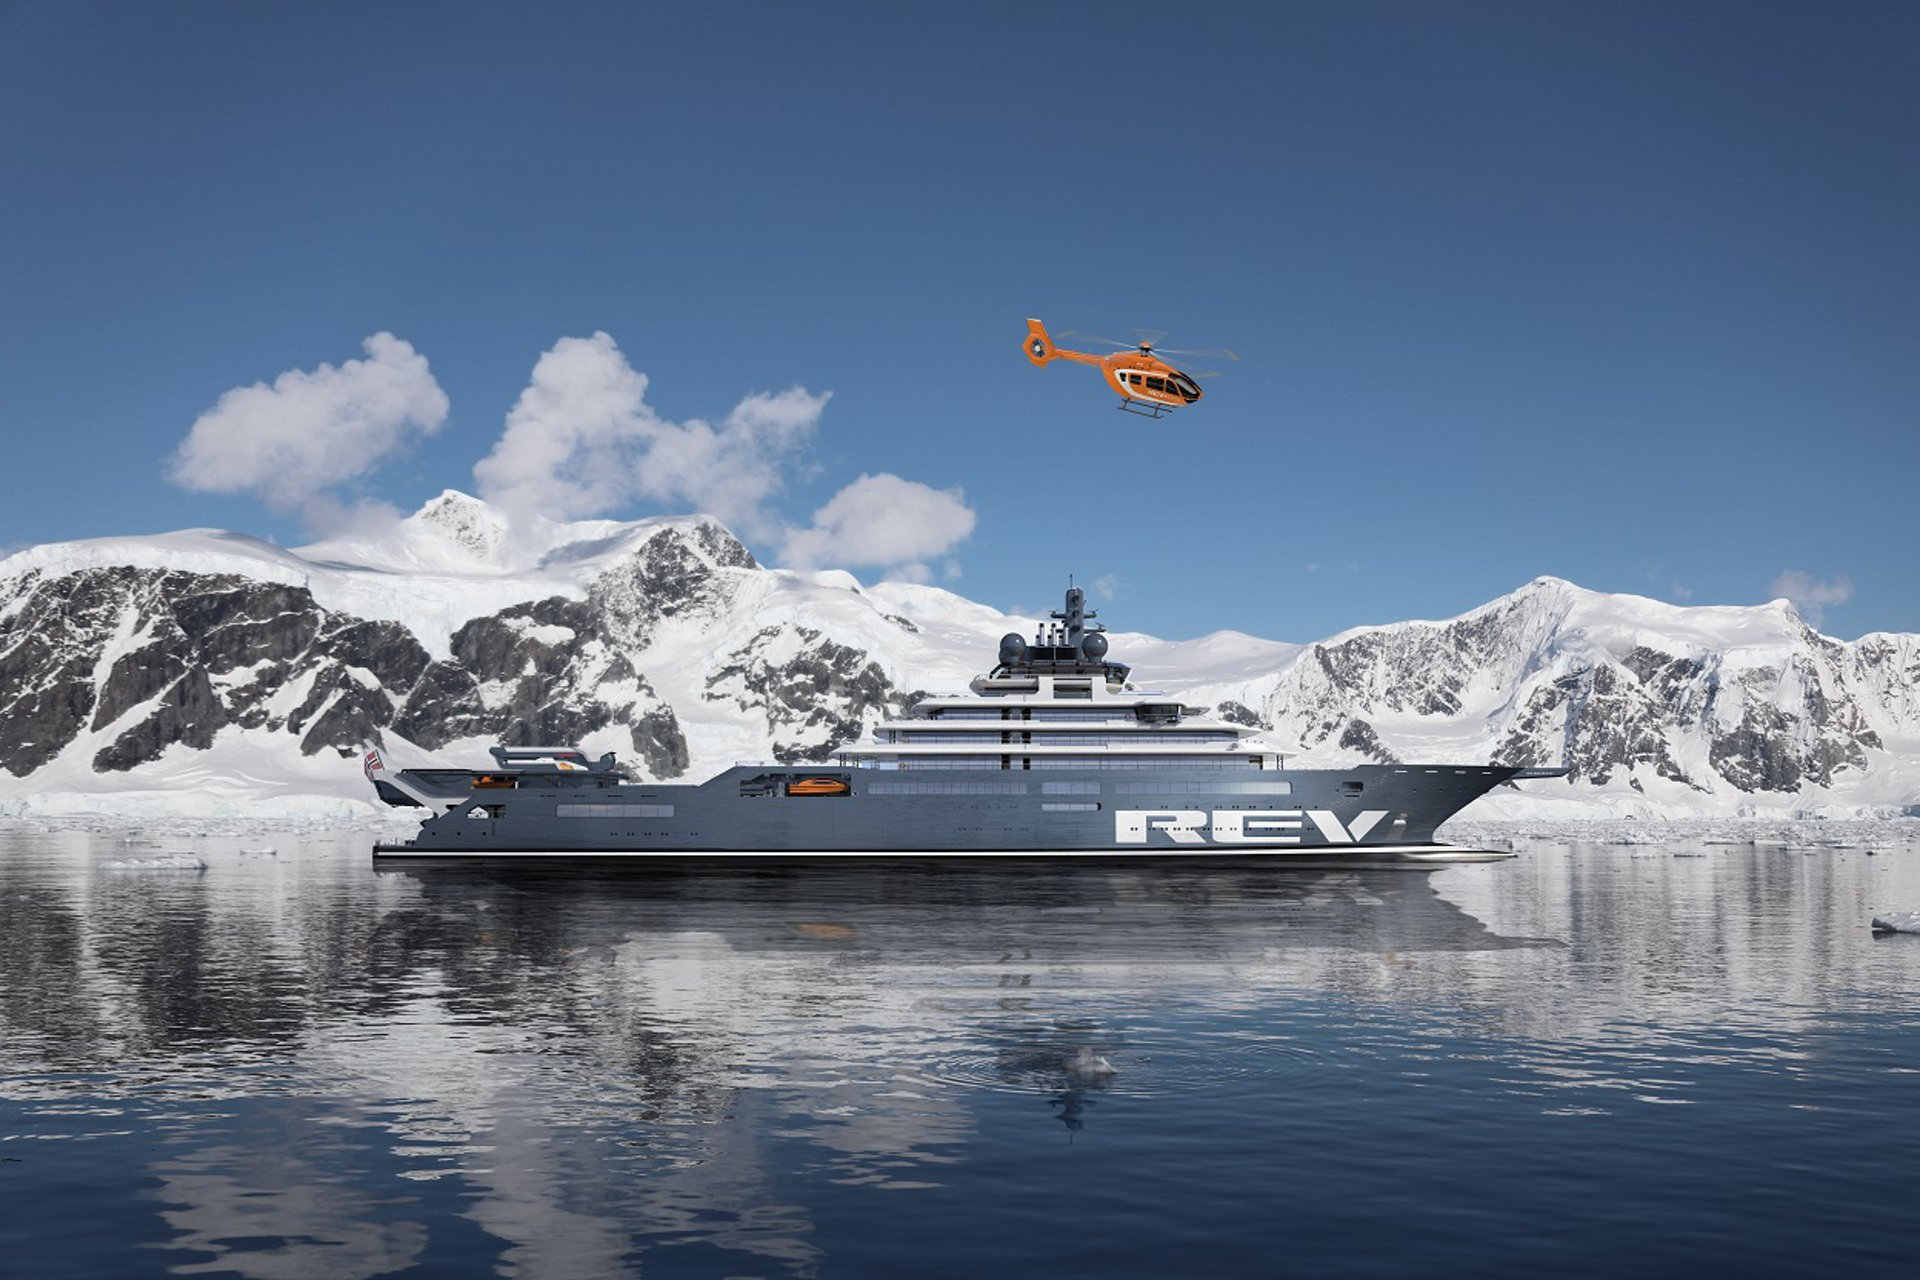 Airbus Helicopters is to provide the on-board helicopter for the REV Ocean research and expedition vessel – the world's largest superyacht.